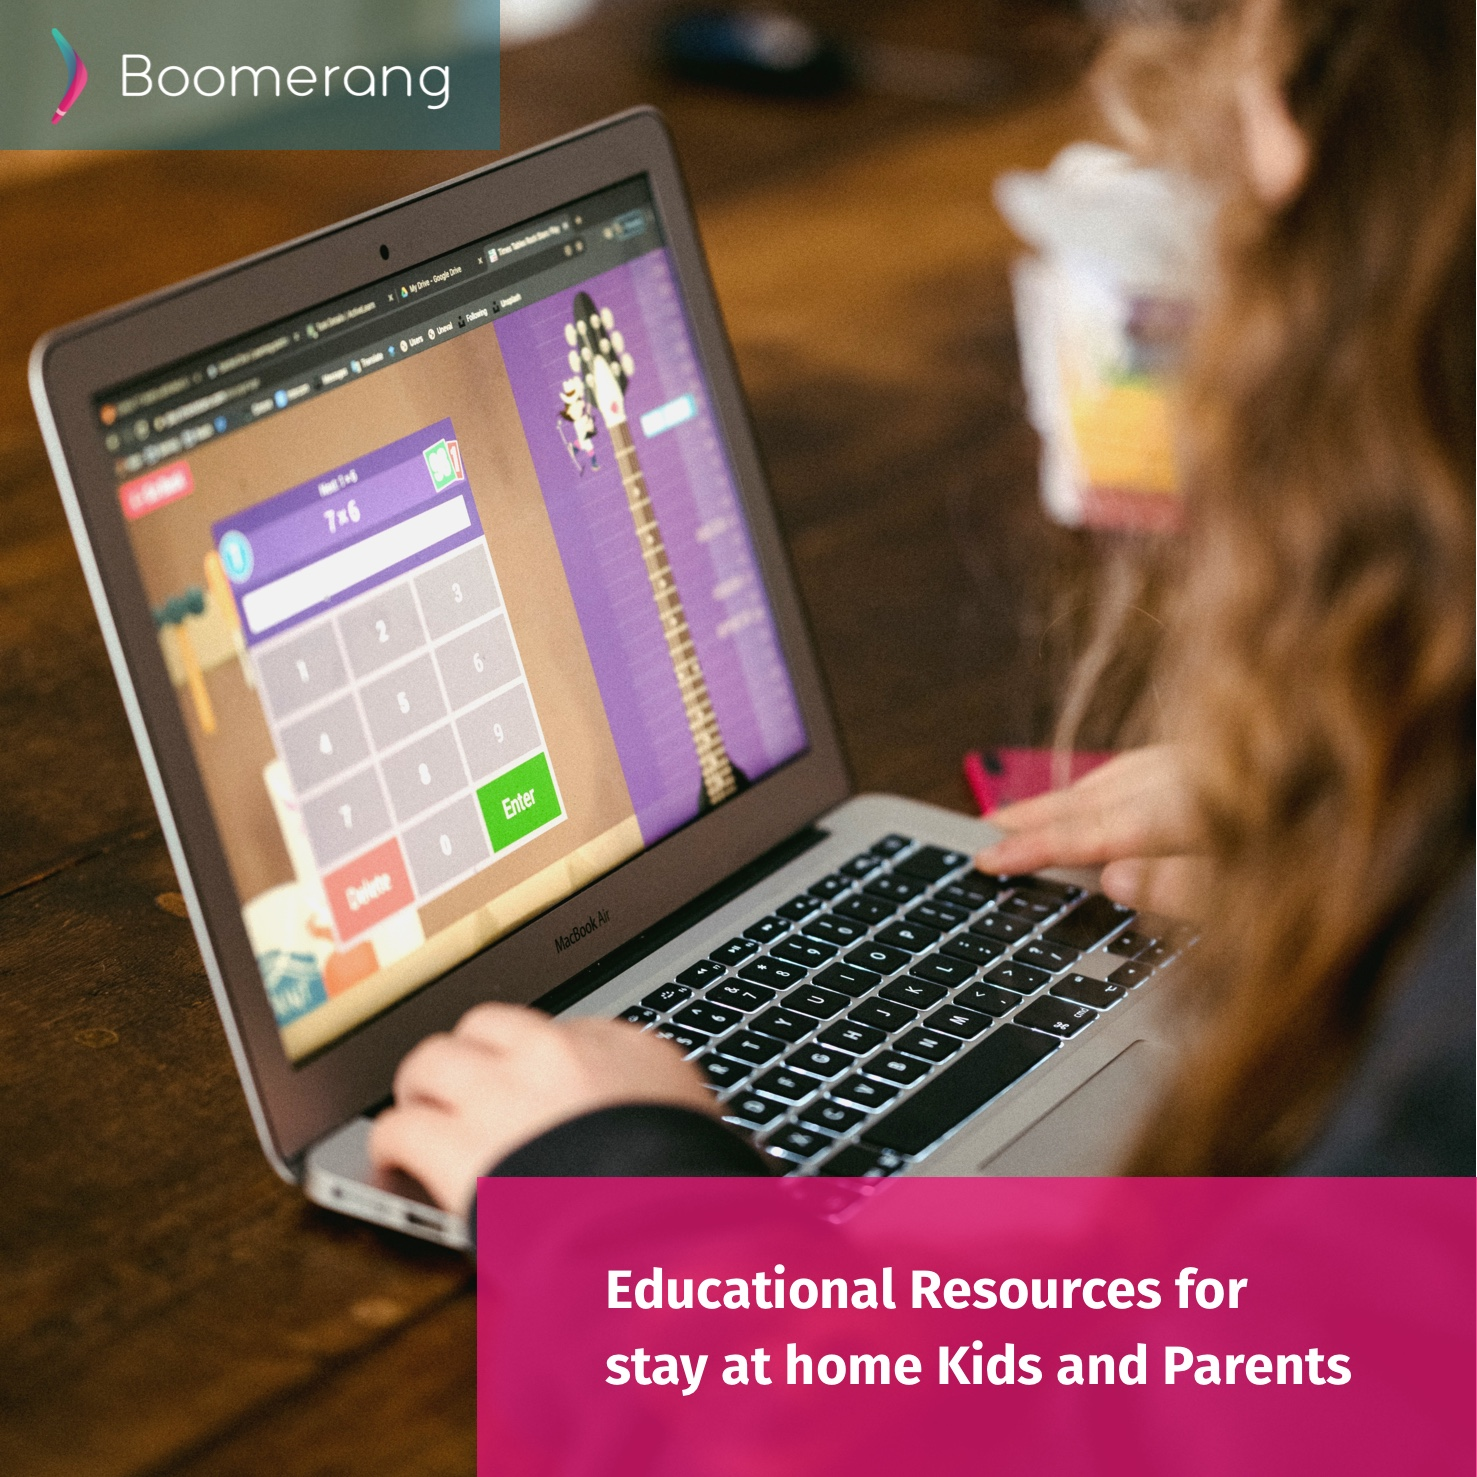 Educational Resources for stay at home Kids and Parents